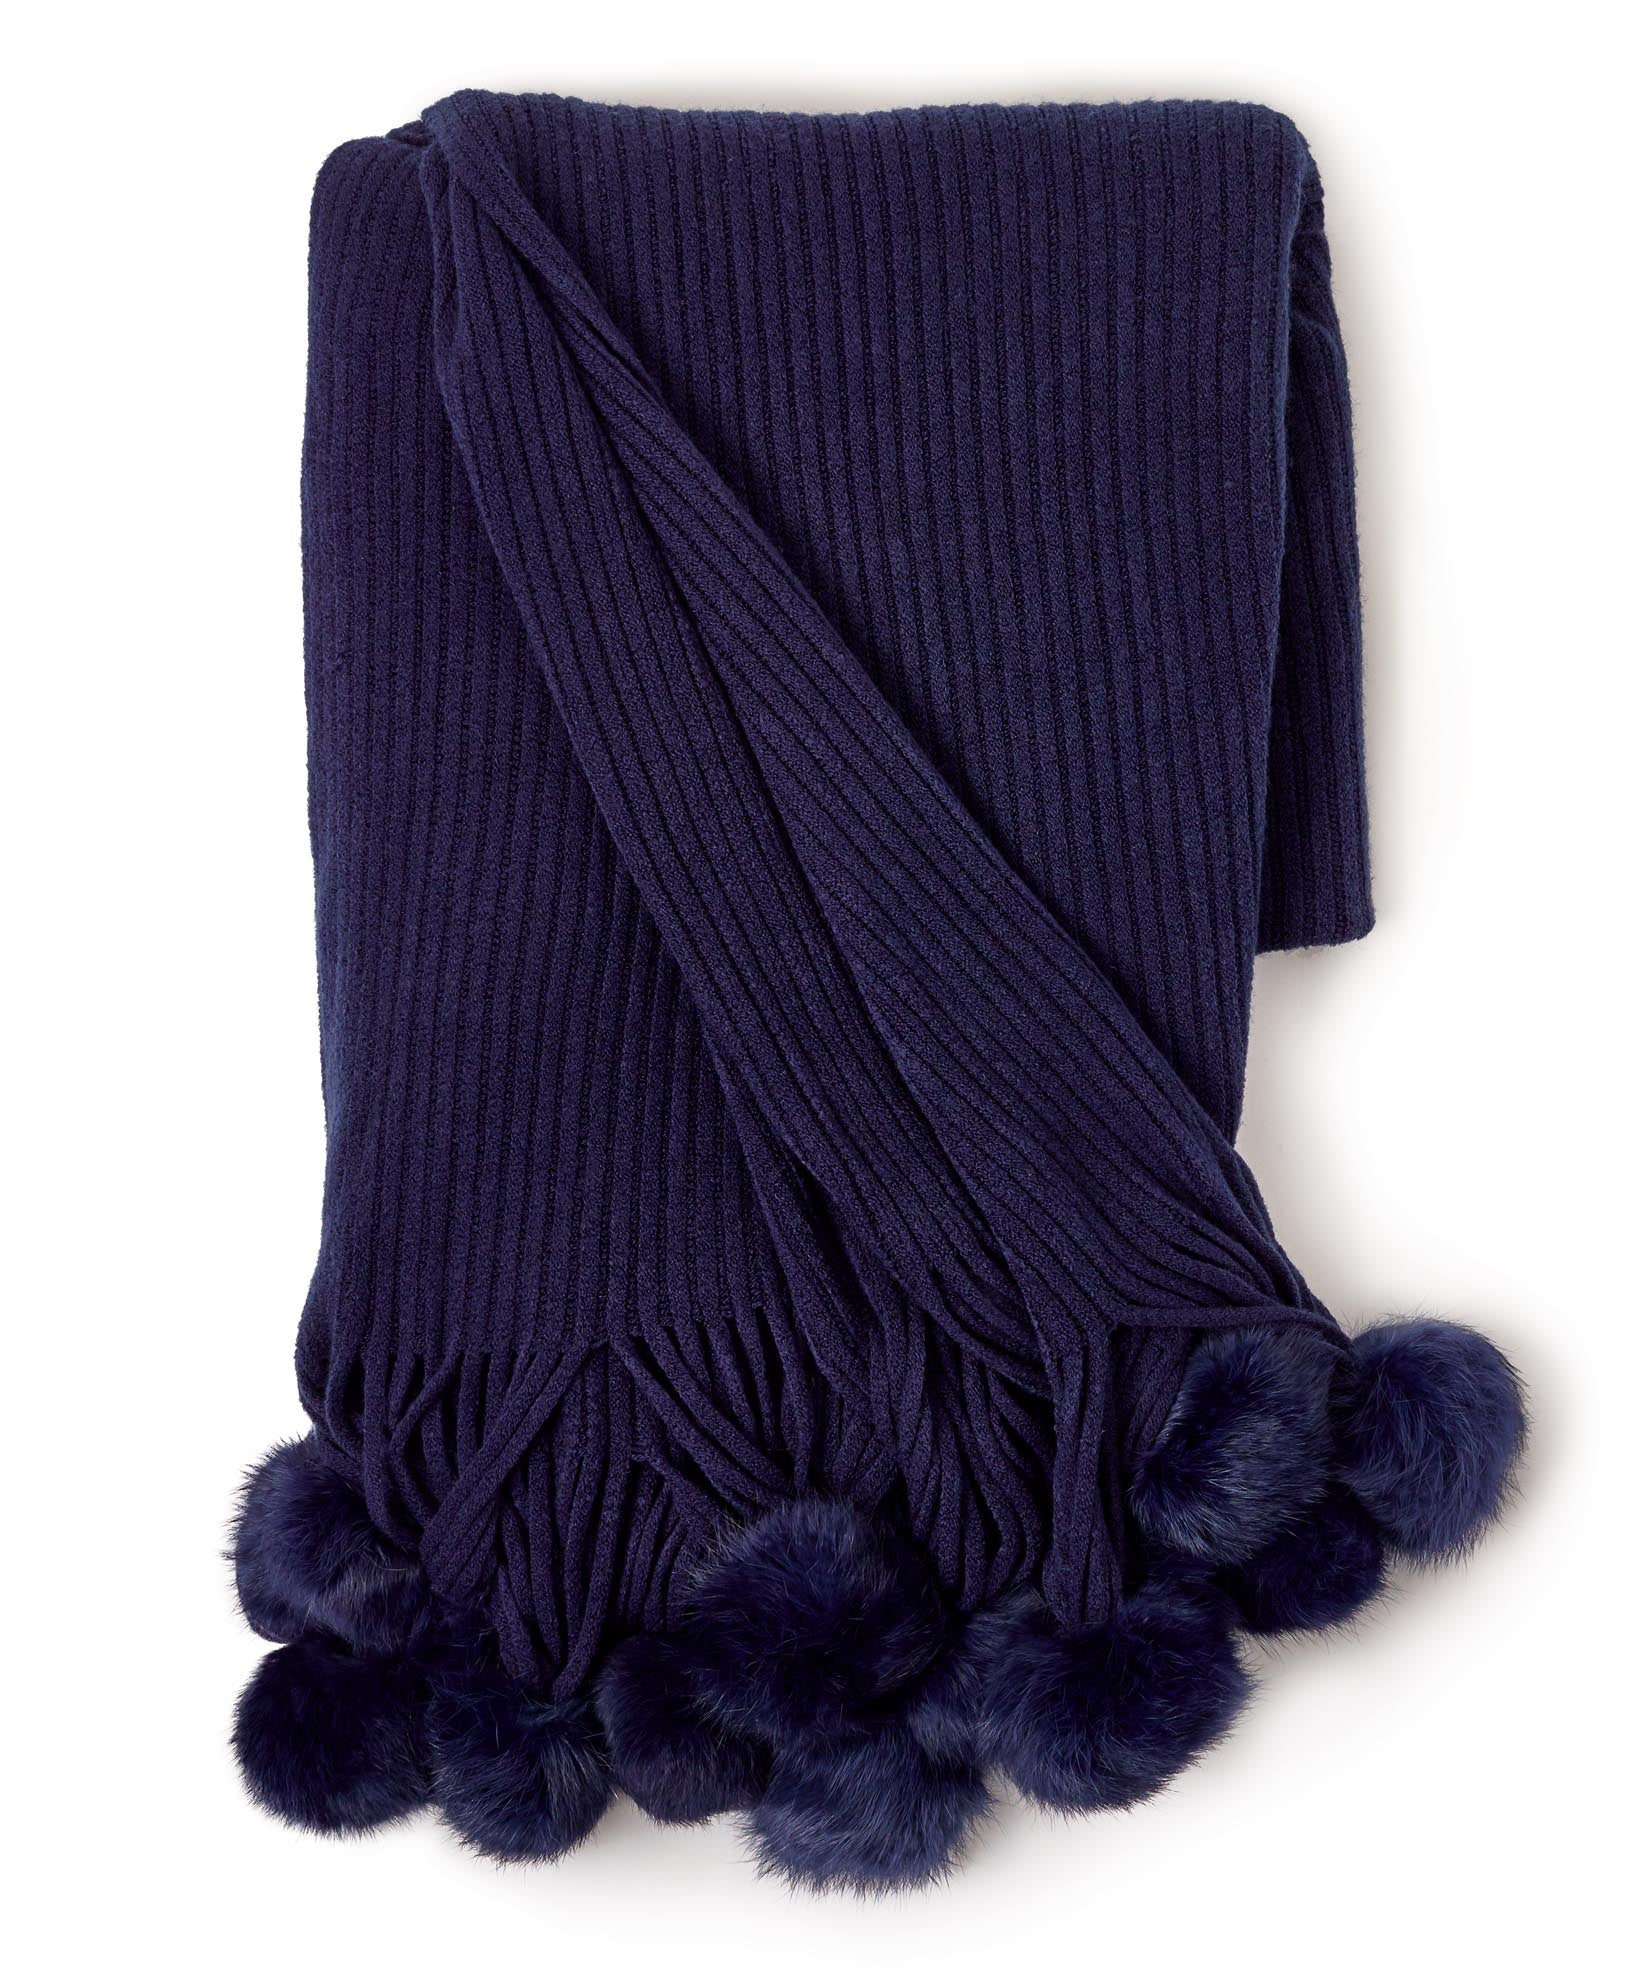 Maritime Navy - Solid Throw With Fur Poms